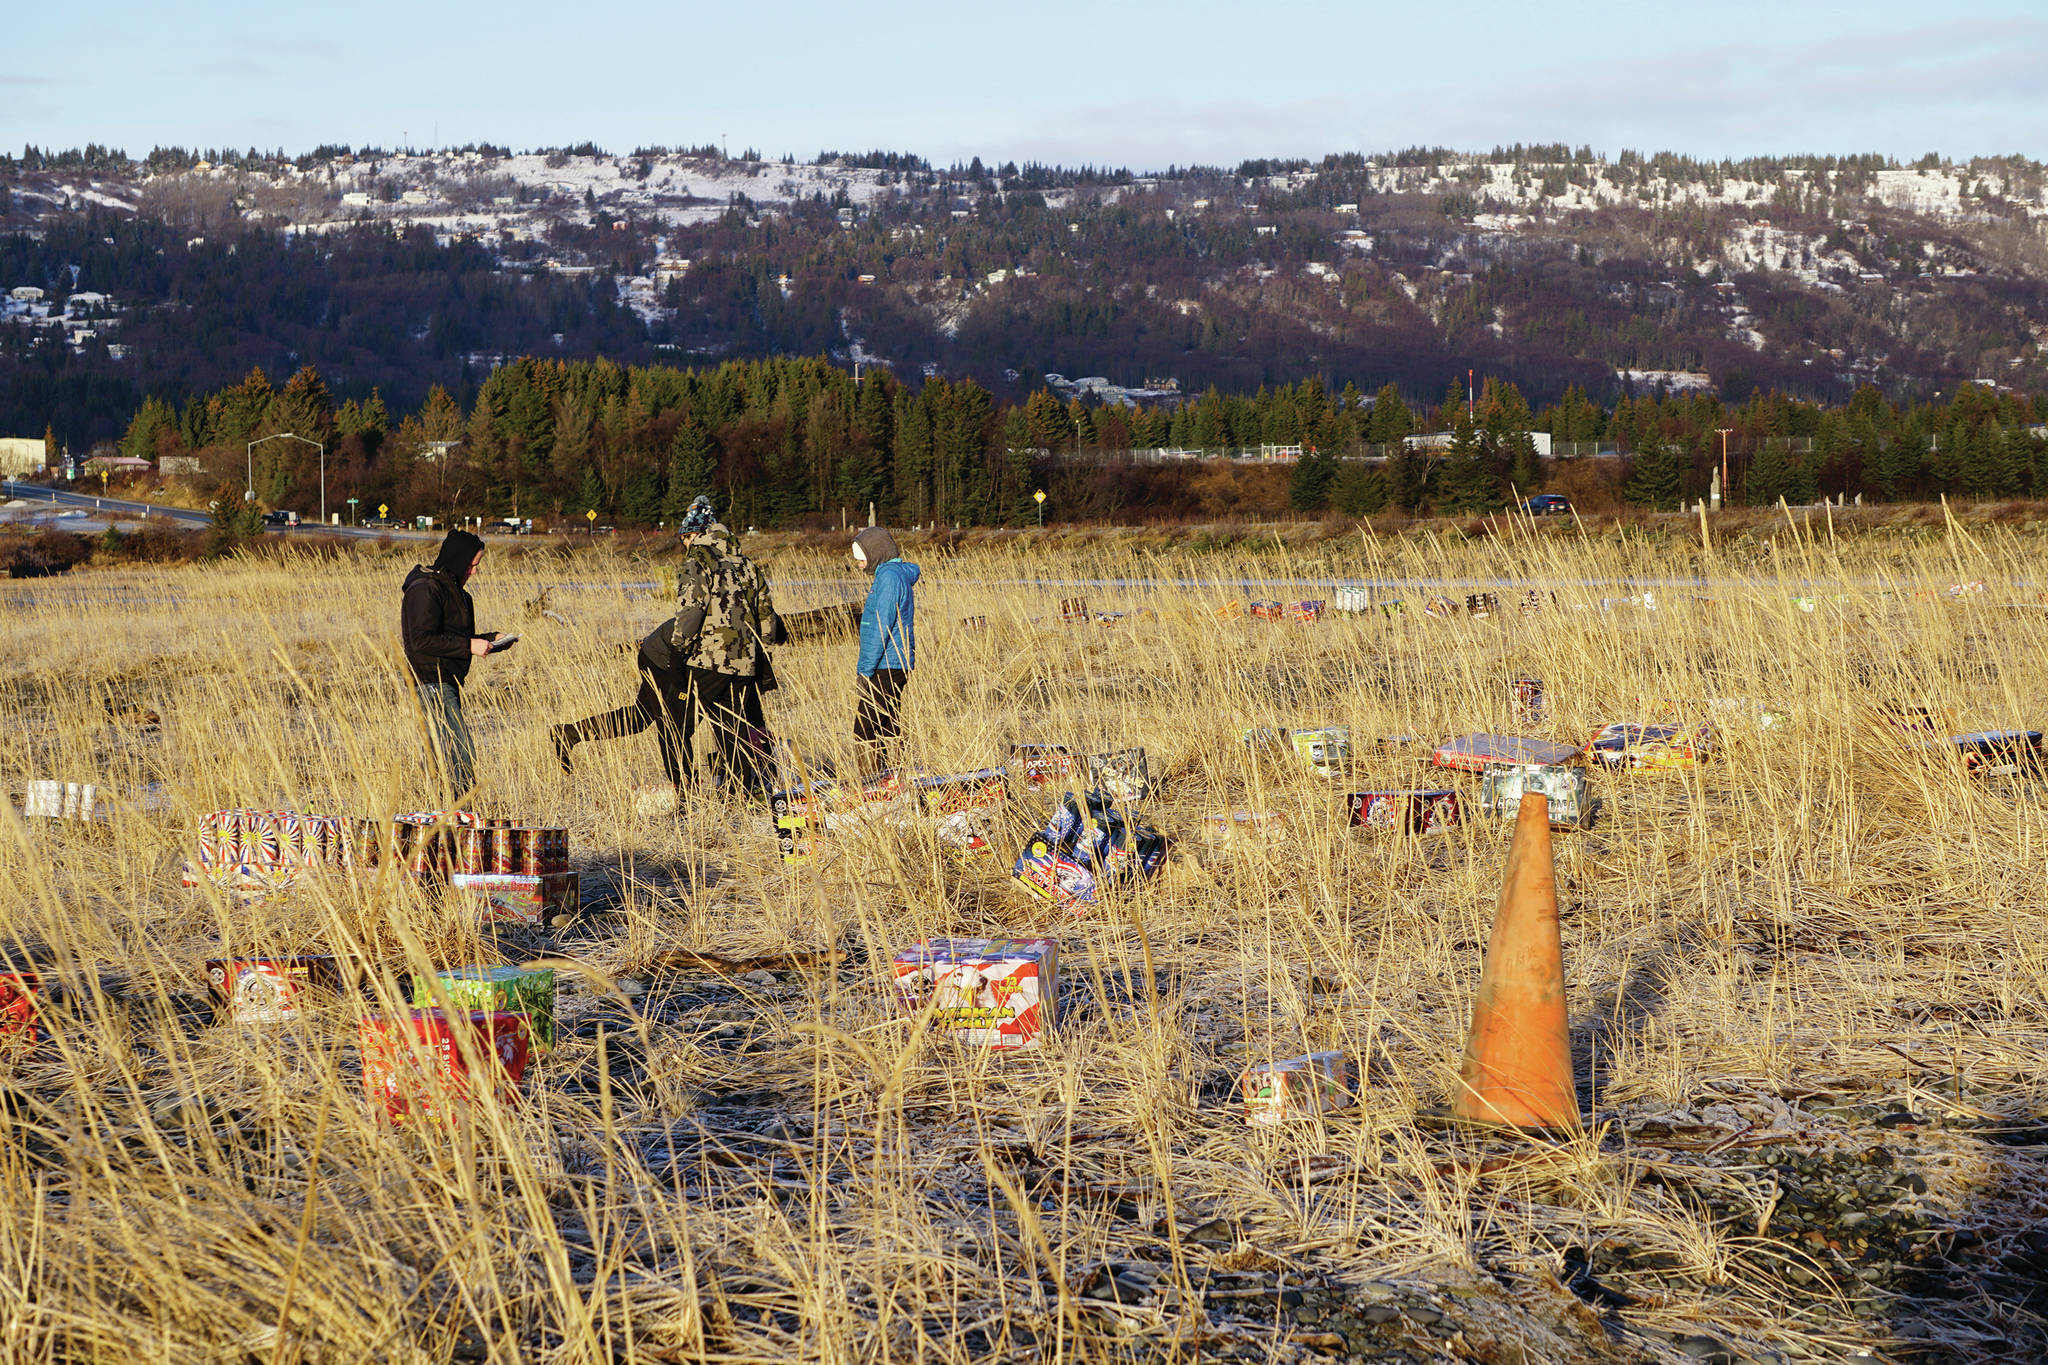 Fireworks are set up on Thursday, Dec. 31, 2020, in advance of the show later that night at Mariner Park on the Homer Spit in Homer, Alaska. (Photo by Michael Armstrong/Homer News)